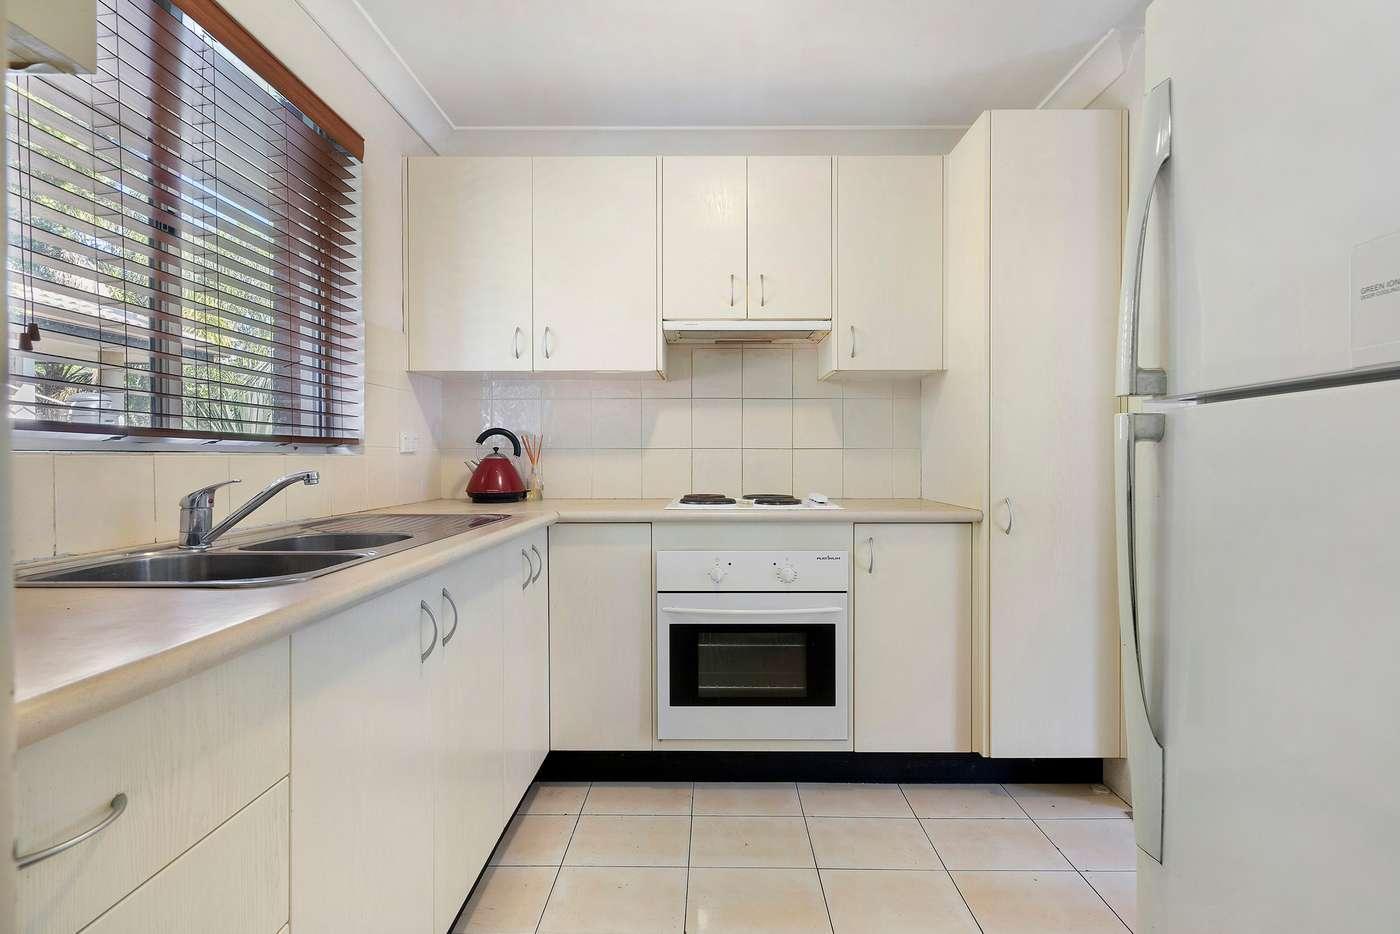 Main view of Homely apartment listing, 3/16 Henry Street, Parramatta NSW 2150